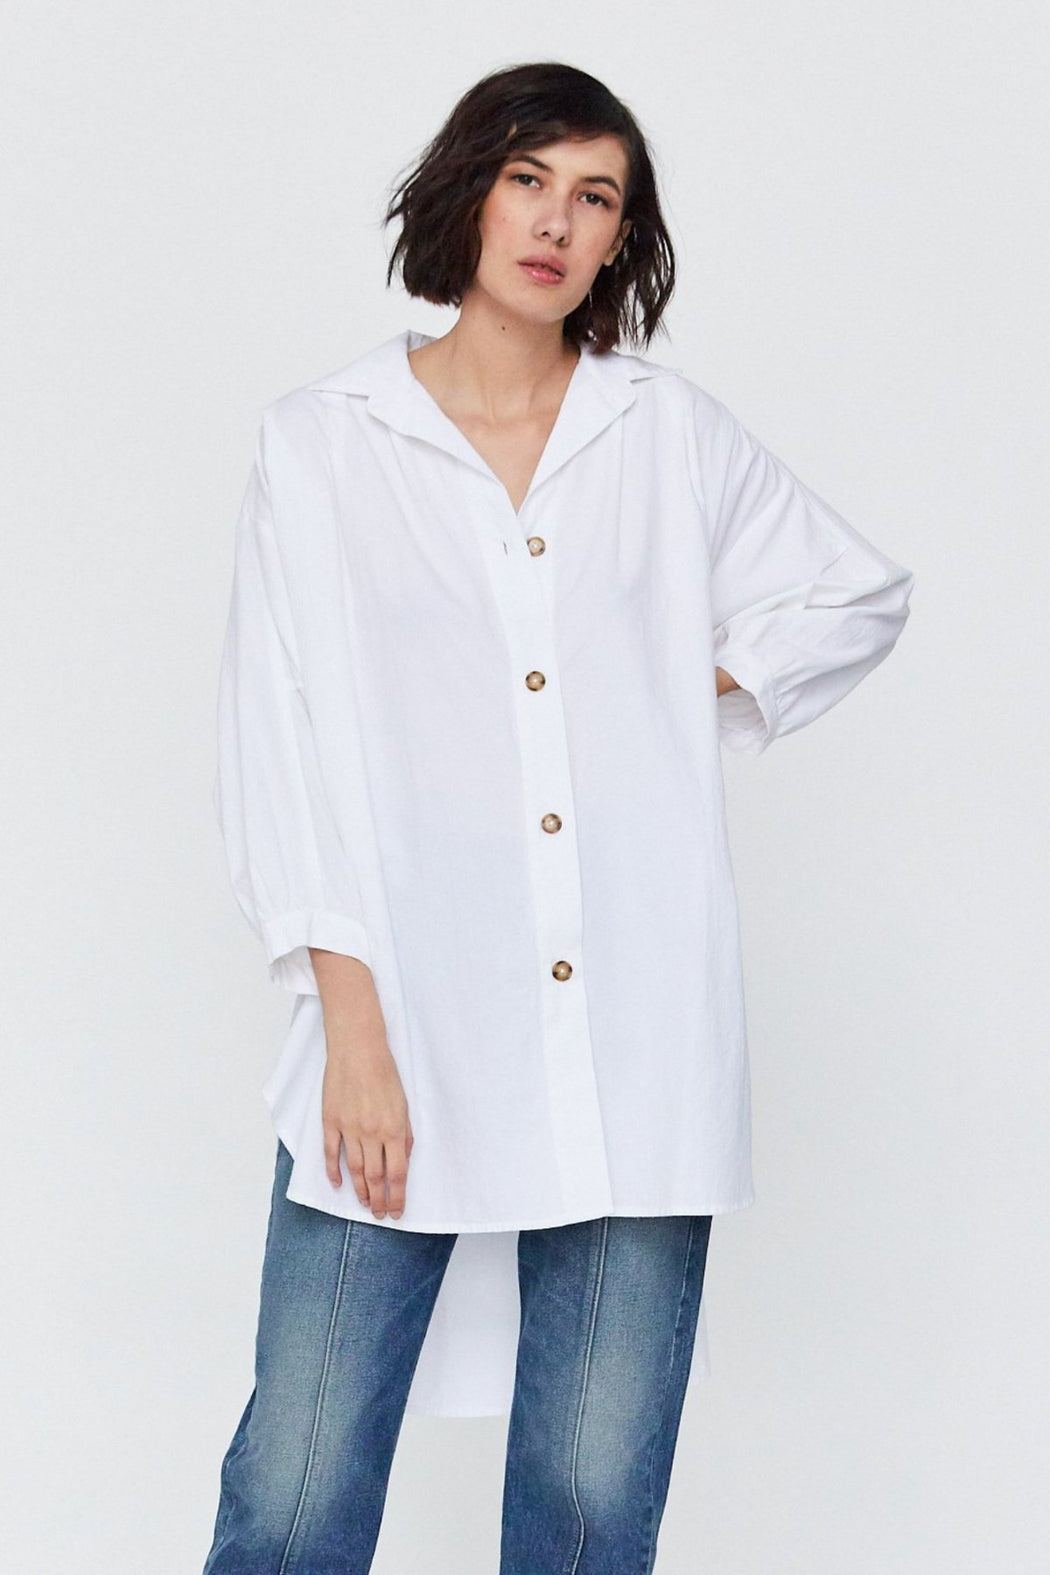 Esby Apparel Ethical Fashion | Chelle Oversized Top | Hazel & Rose